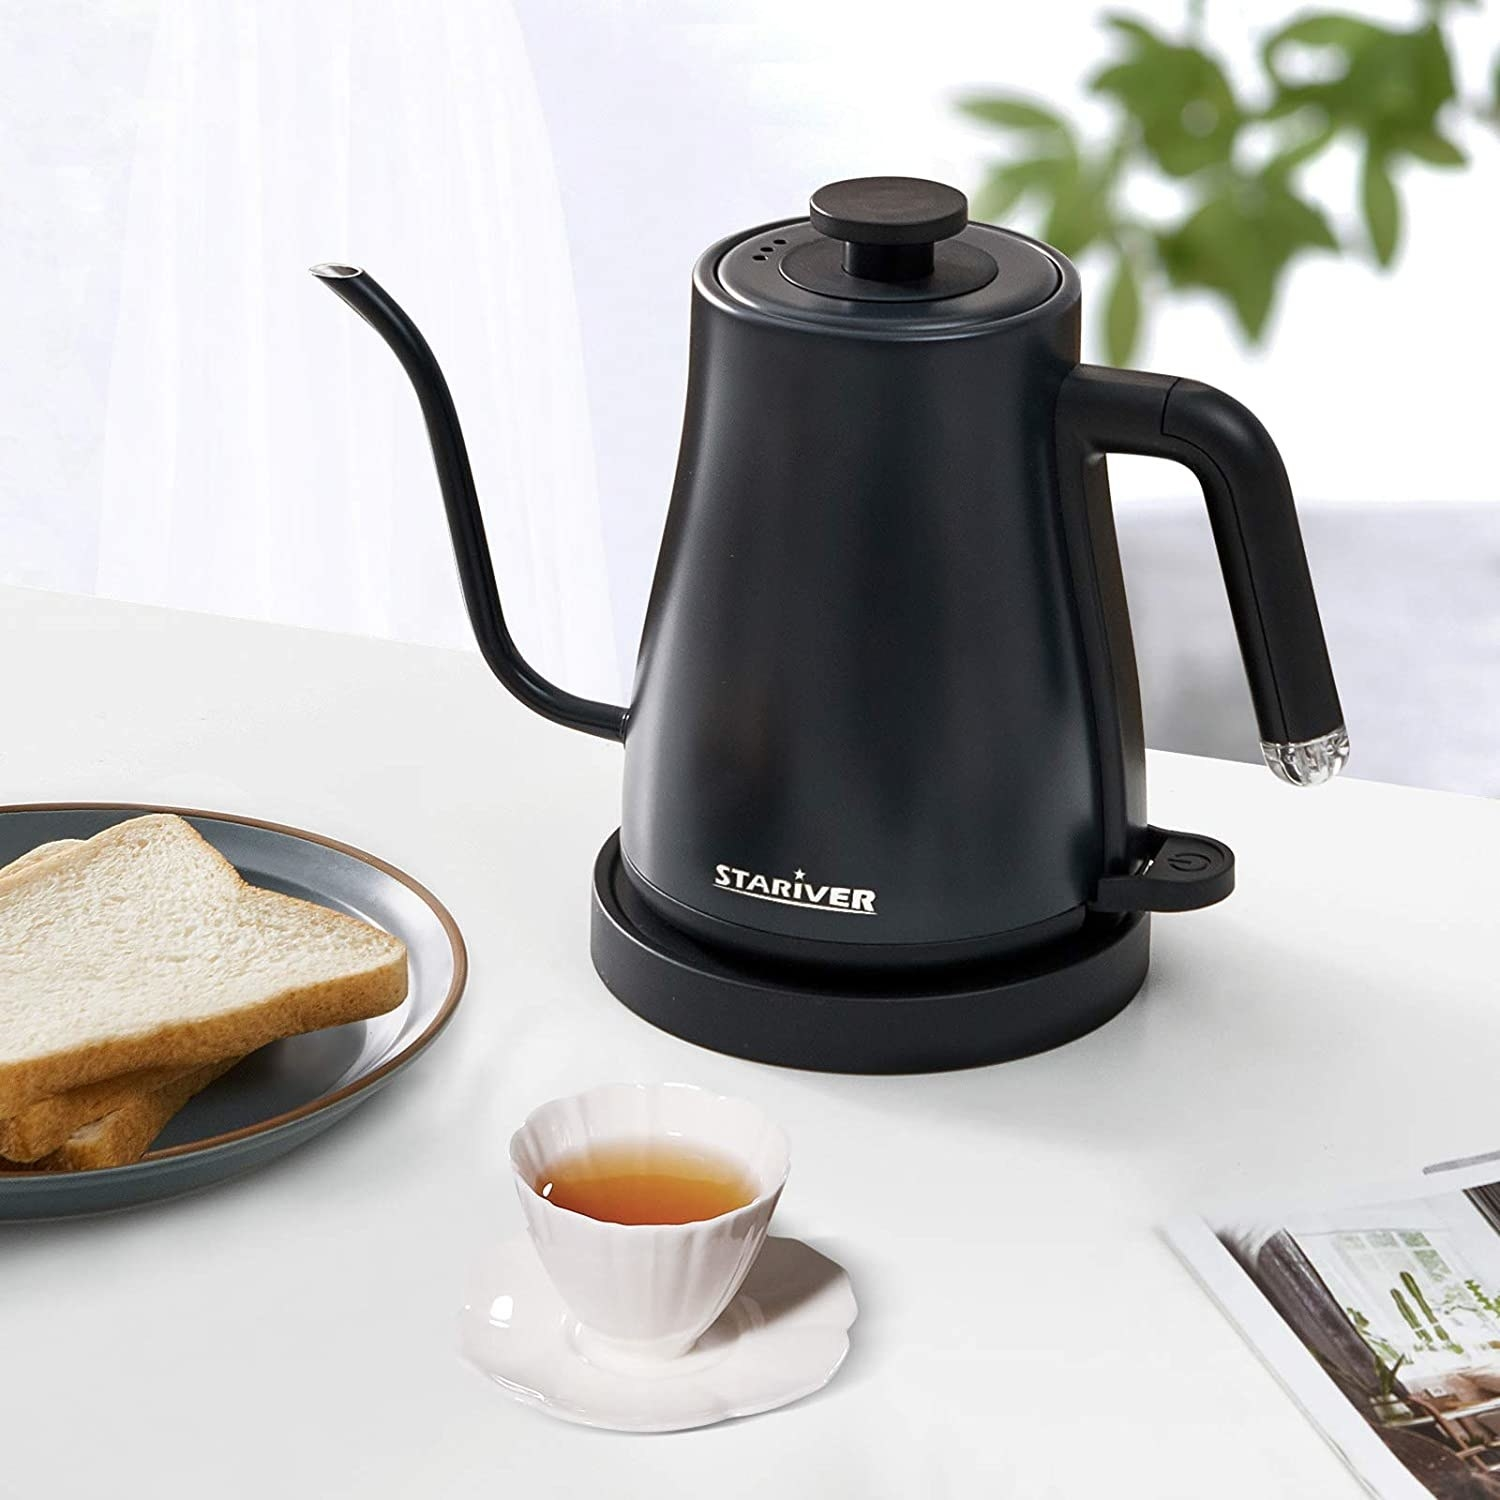 the stariver electric kettle on a breakfast table next to a cup of tea and plate of toast